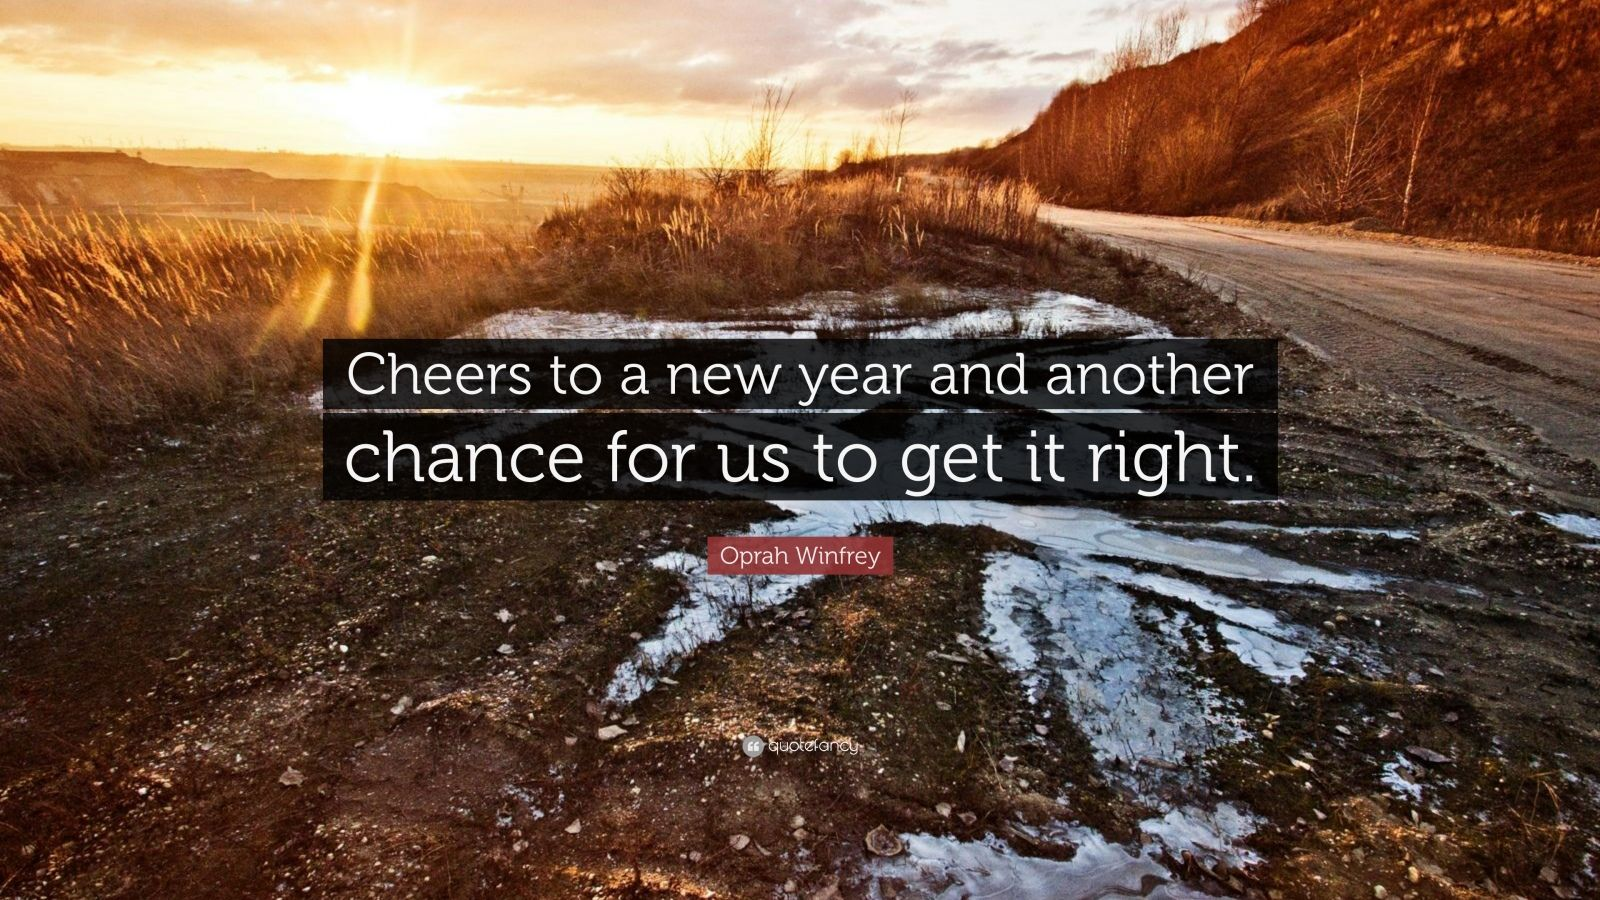 """Oprah Winfrey Quote: """"Cheers to a new year and another chance for us to get it right."""""""